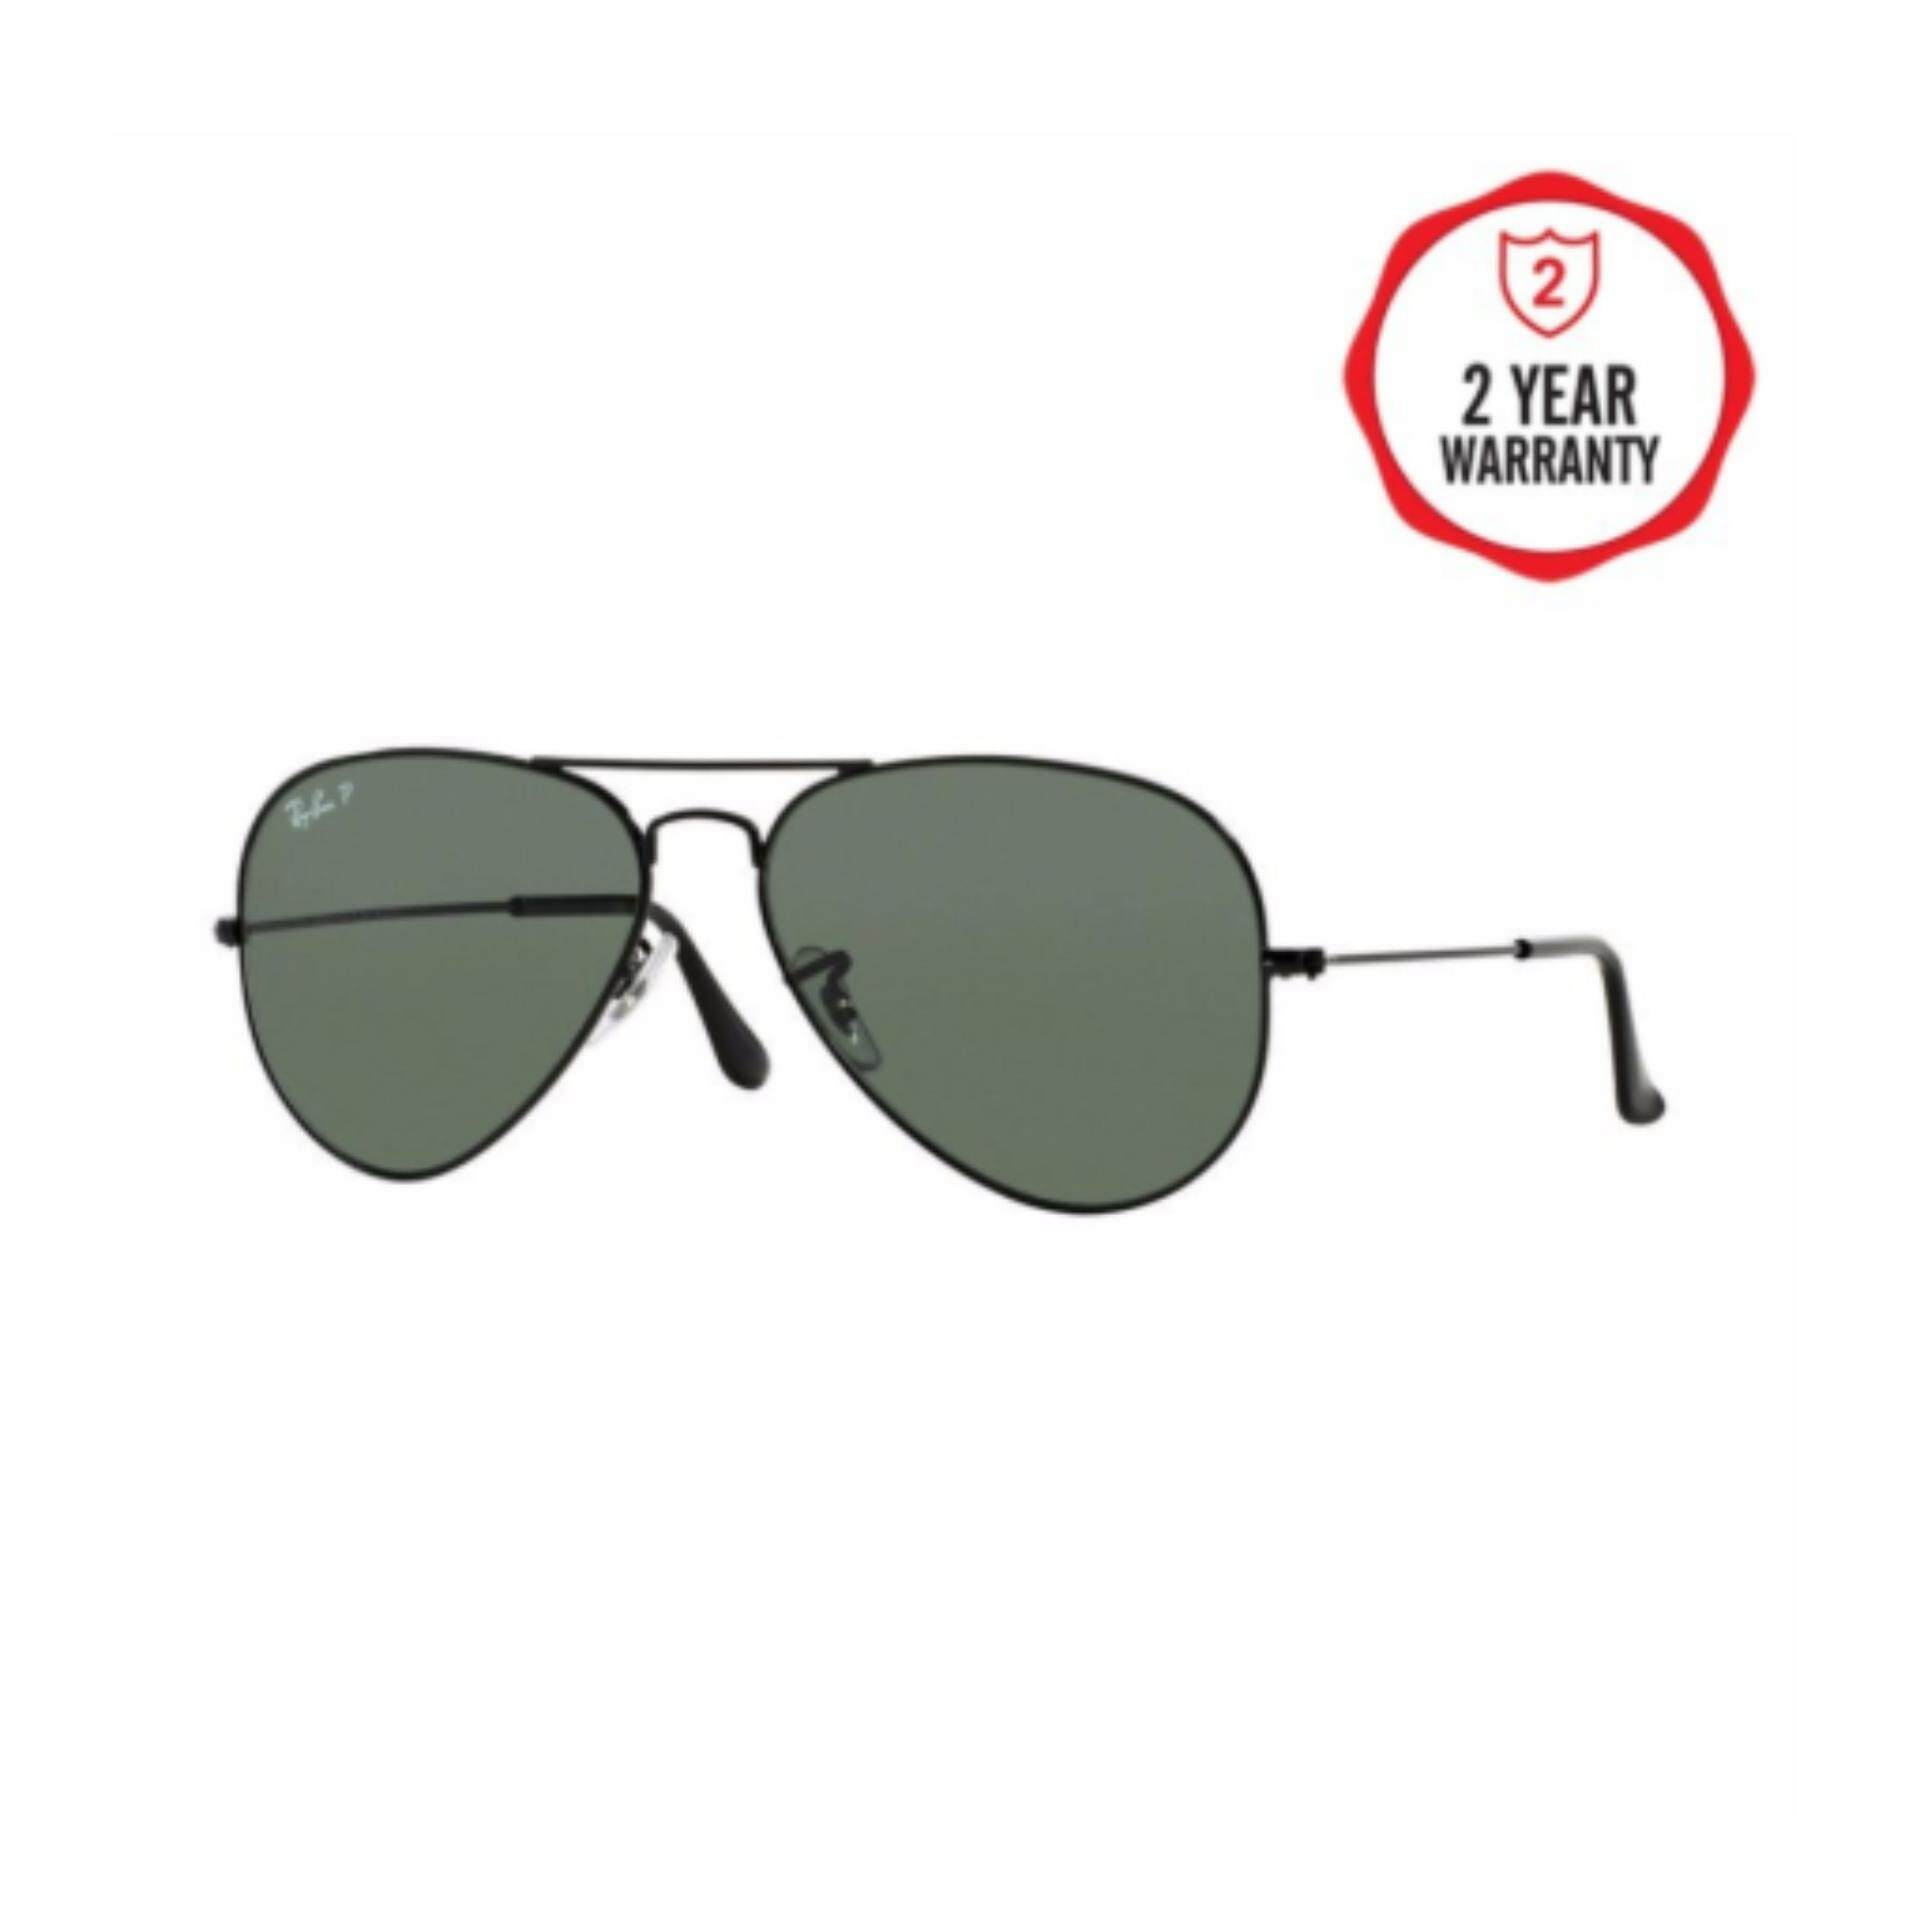 Ray-Ban Aviator large metal รุ่น RB3025